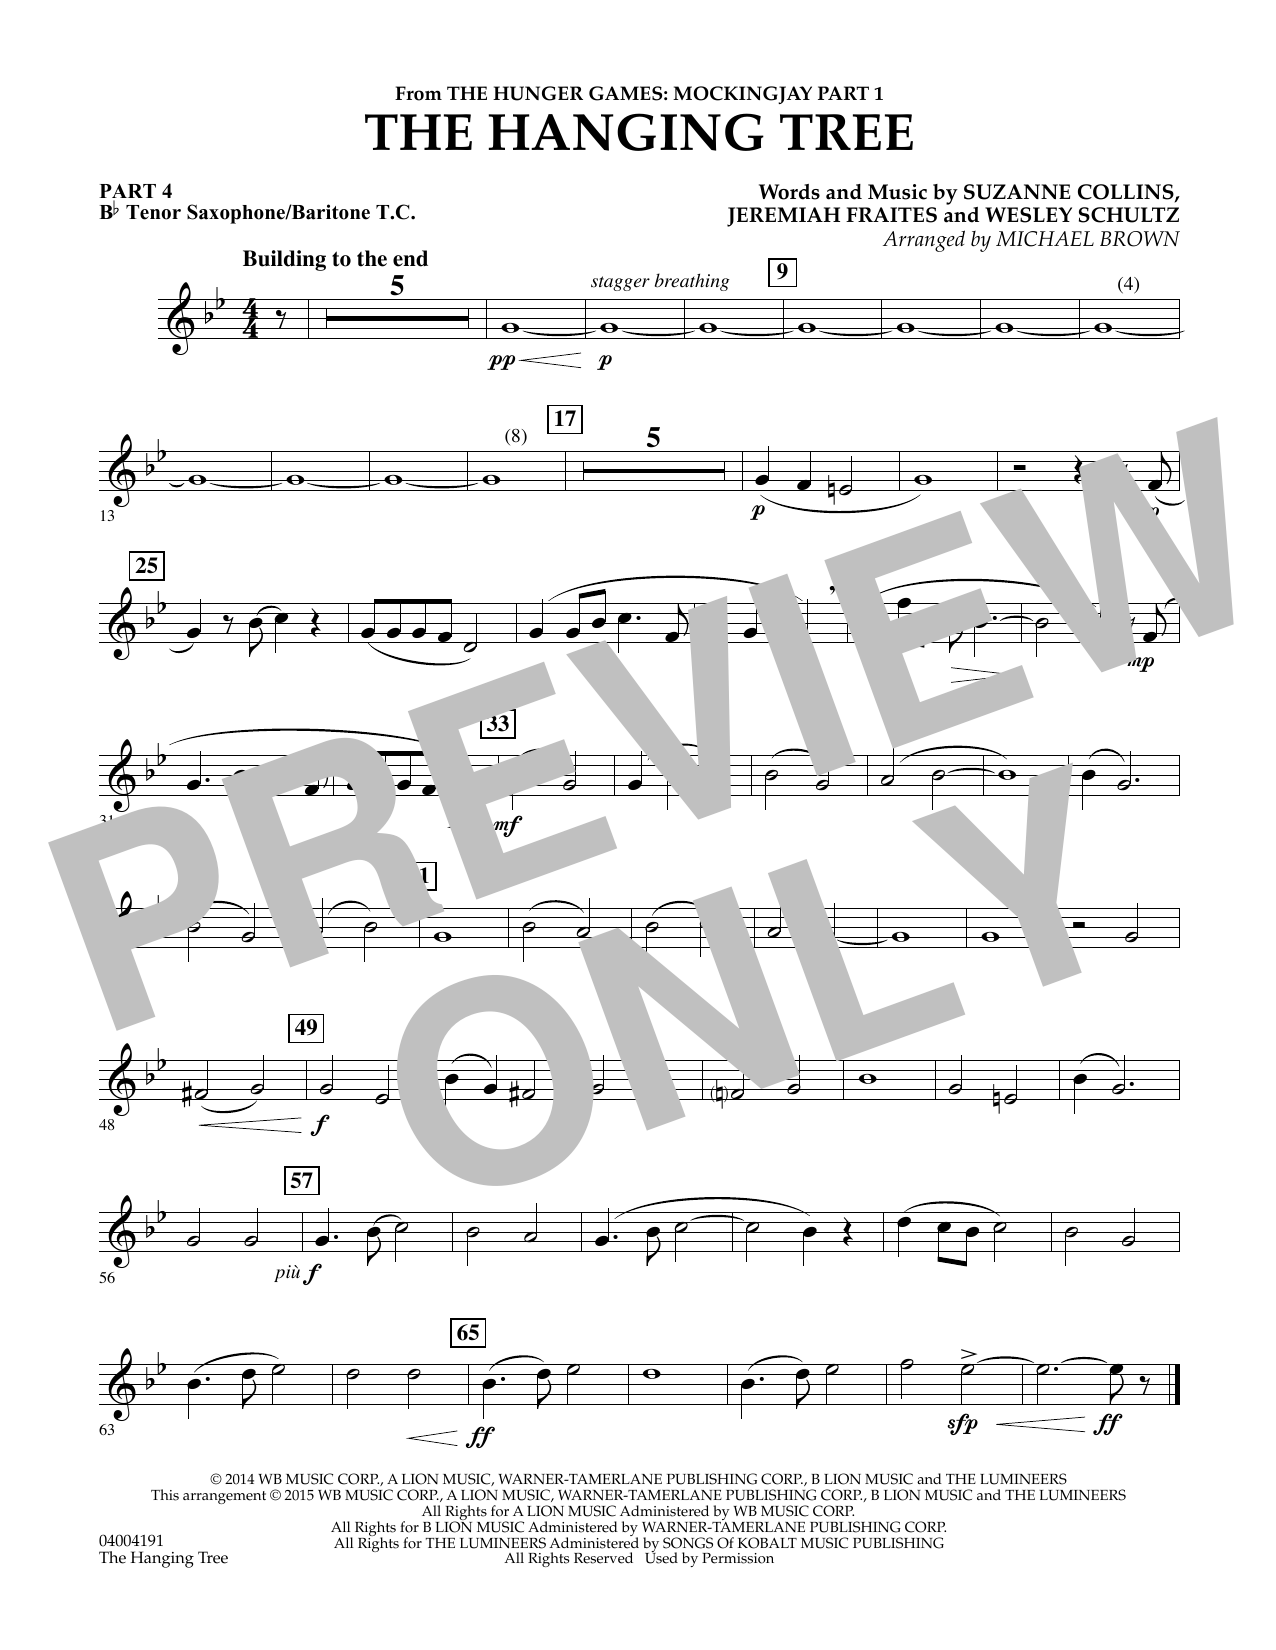 The Hanging Tree (from The Hunger Games: Mockingjay Part 1) - Pt.4 - Bb Tenor Sax/Bar. T.C. (Flex-Band)